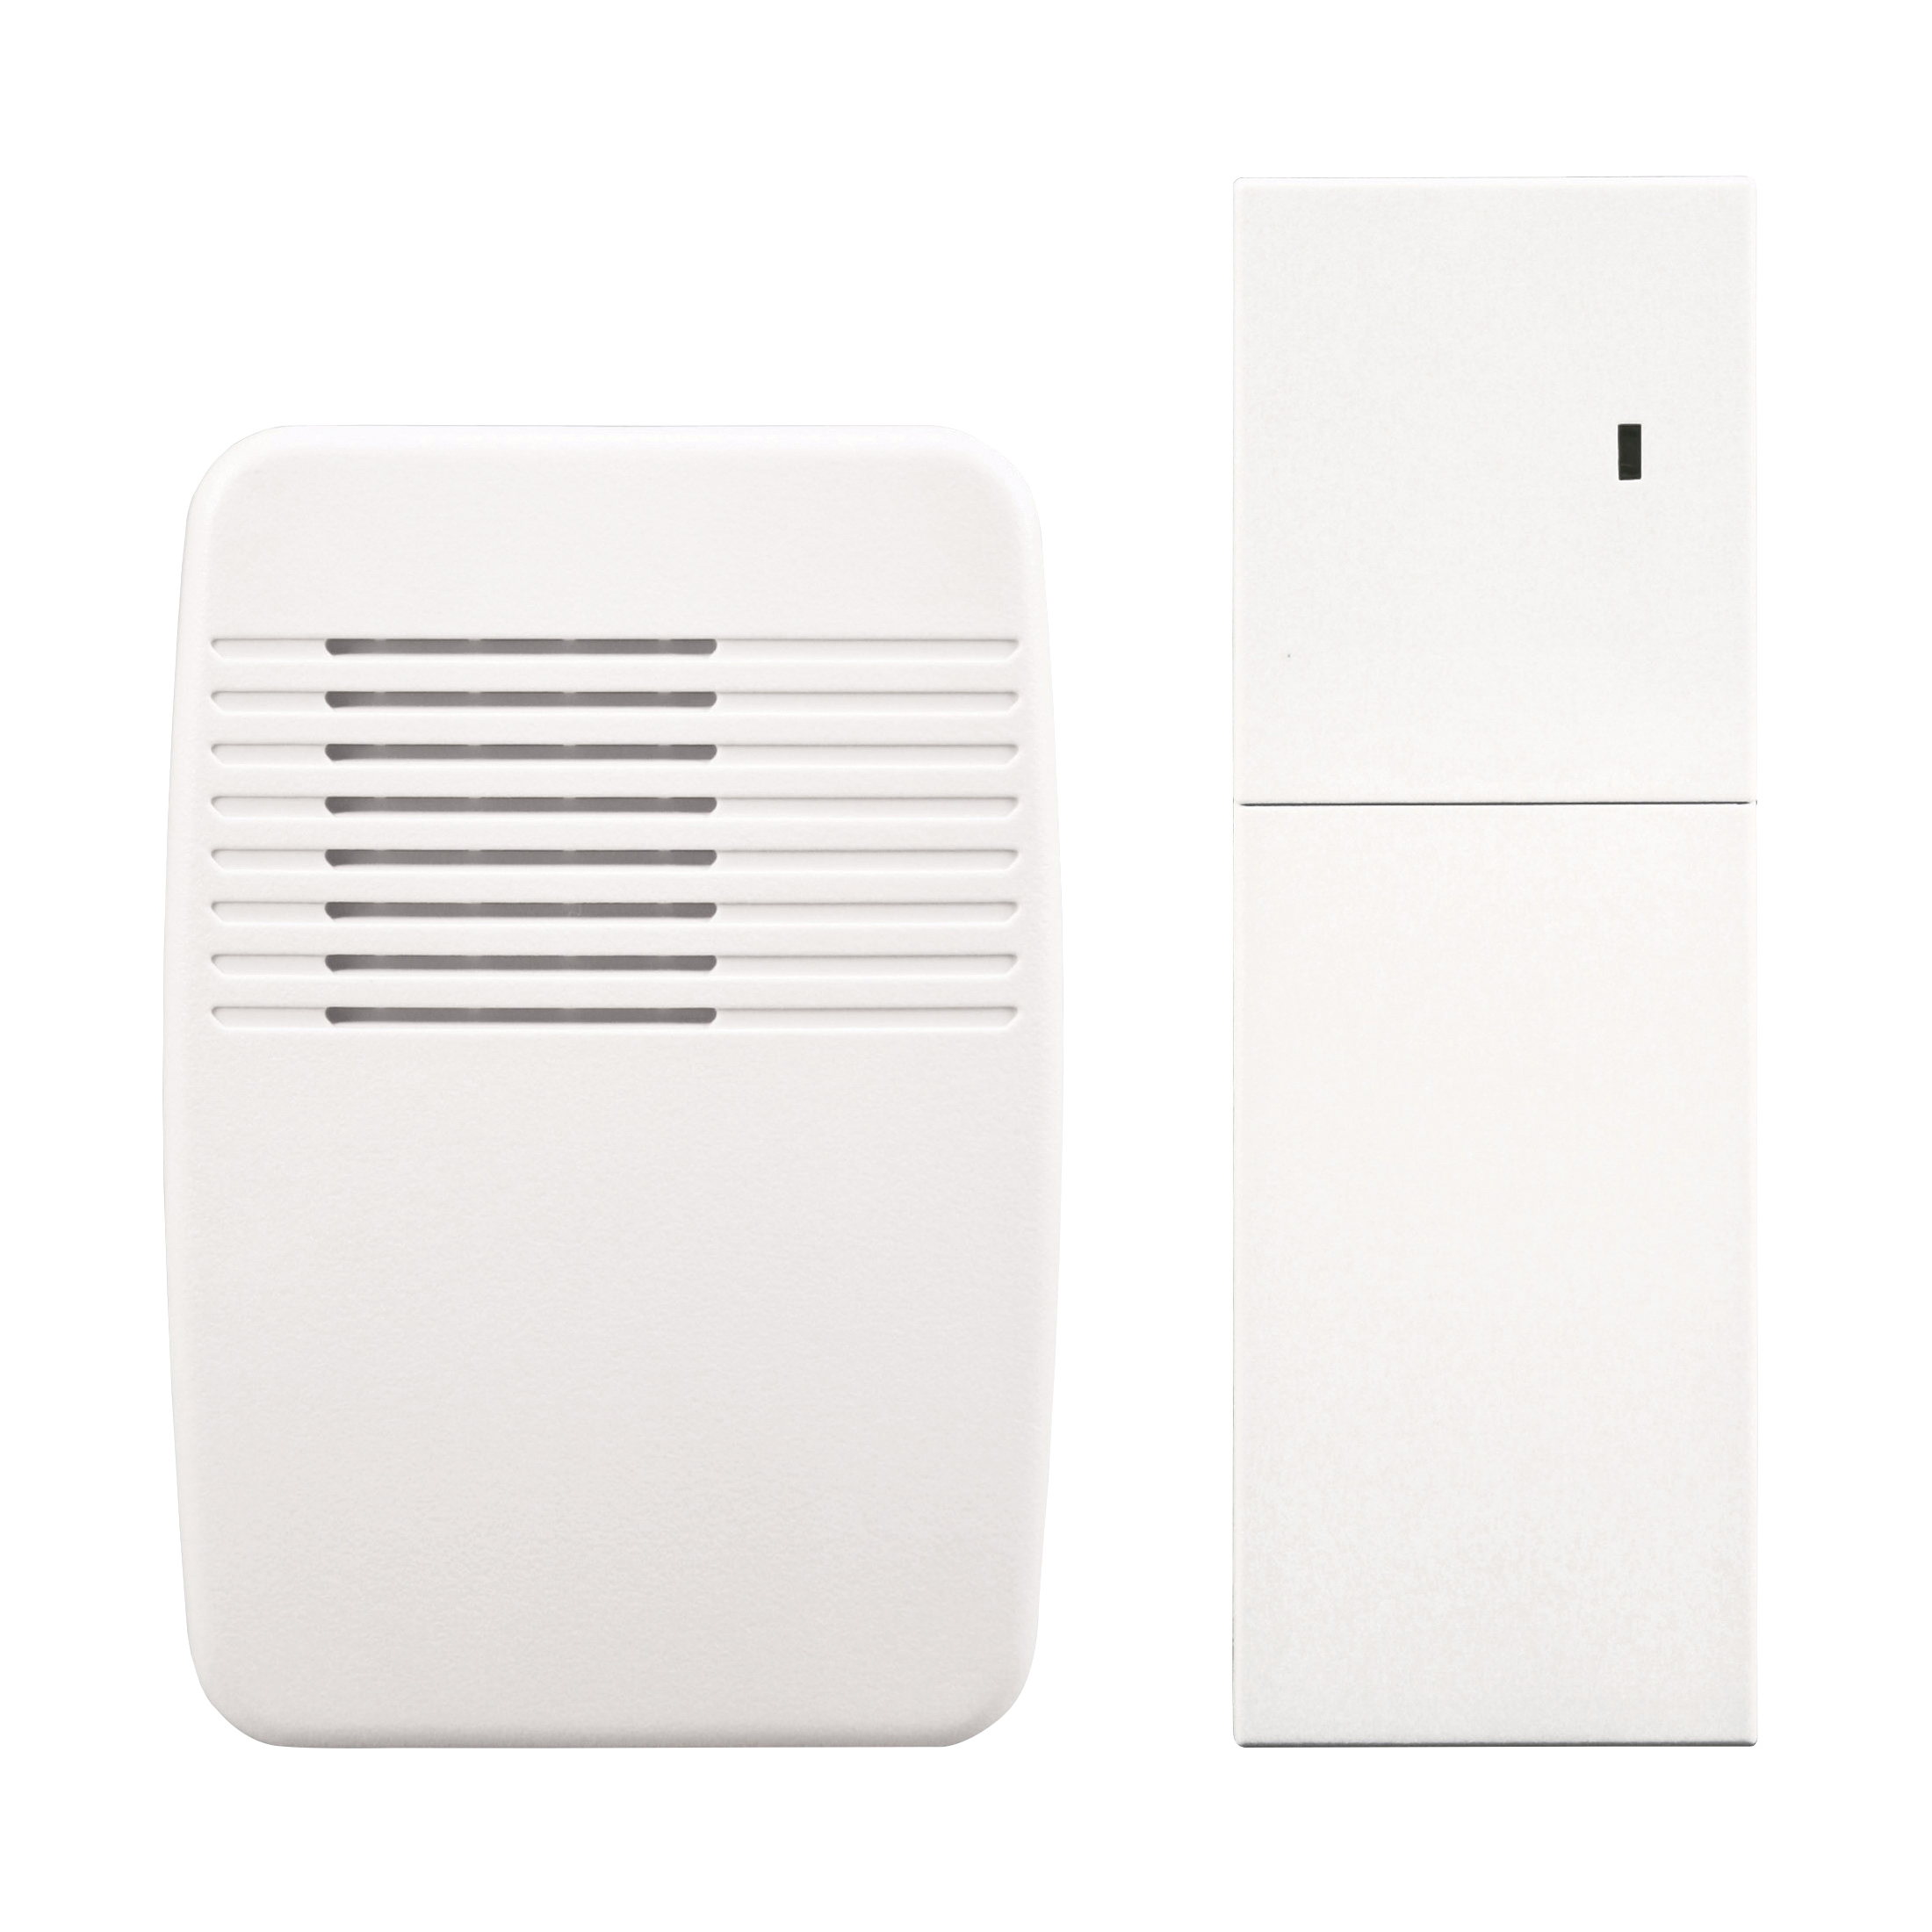 Picture of Heath Zenith SL-7357-02 Doorbell Extender Kit, Ding, Ding-Dong, Westminster Tone, 75 dB, White